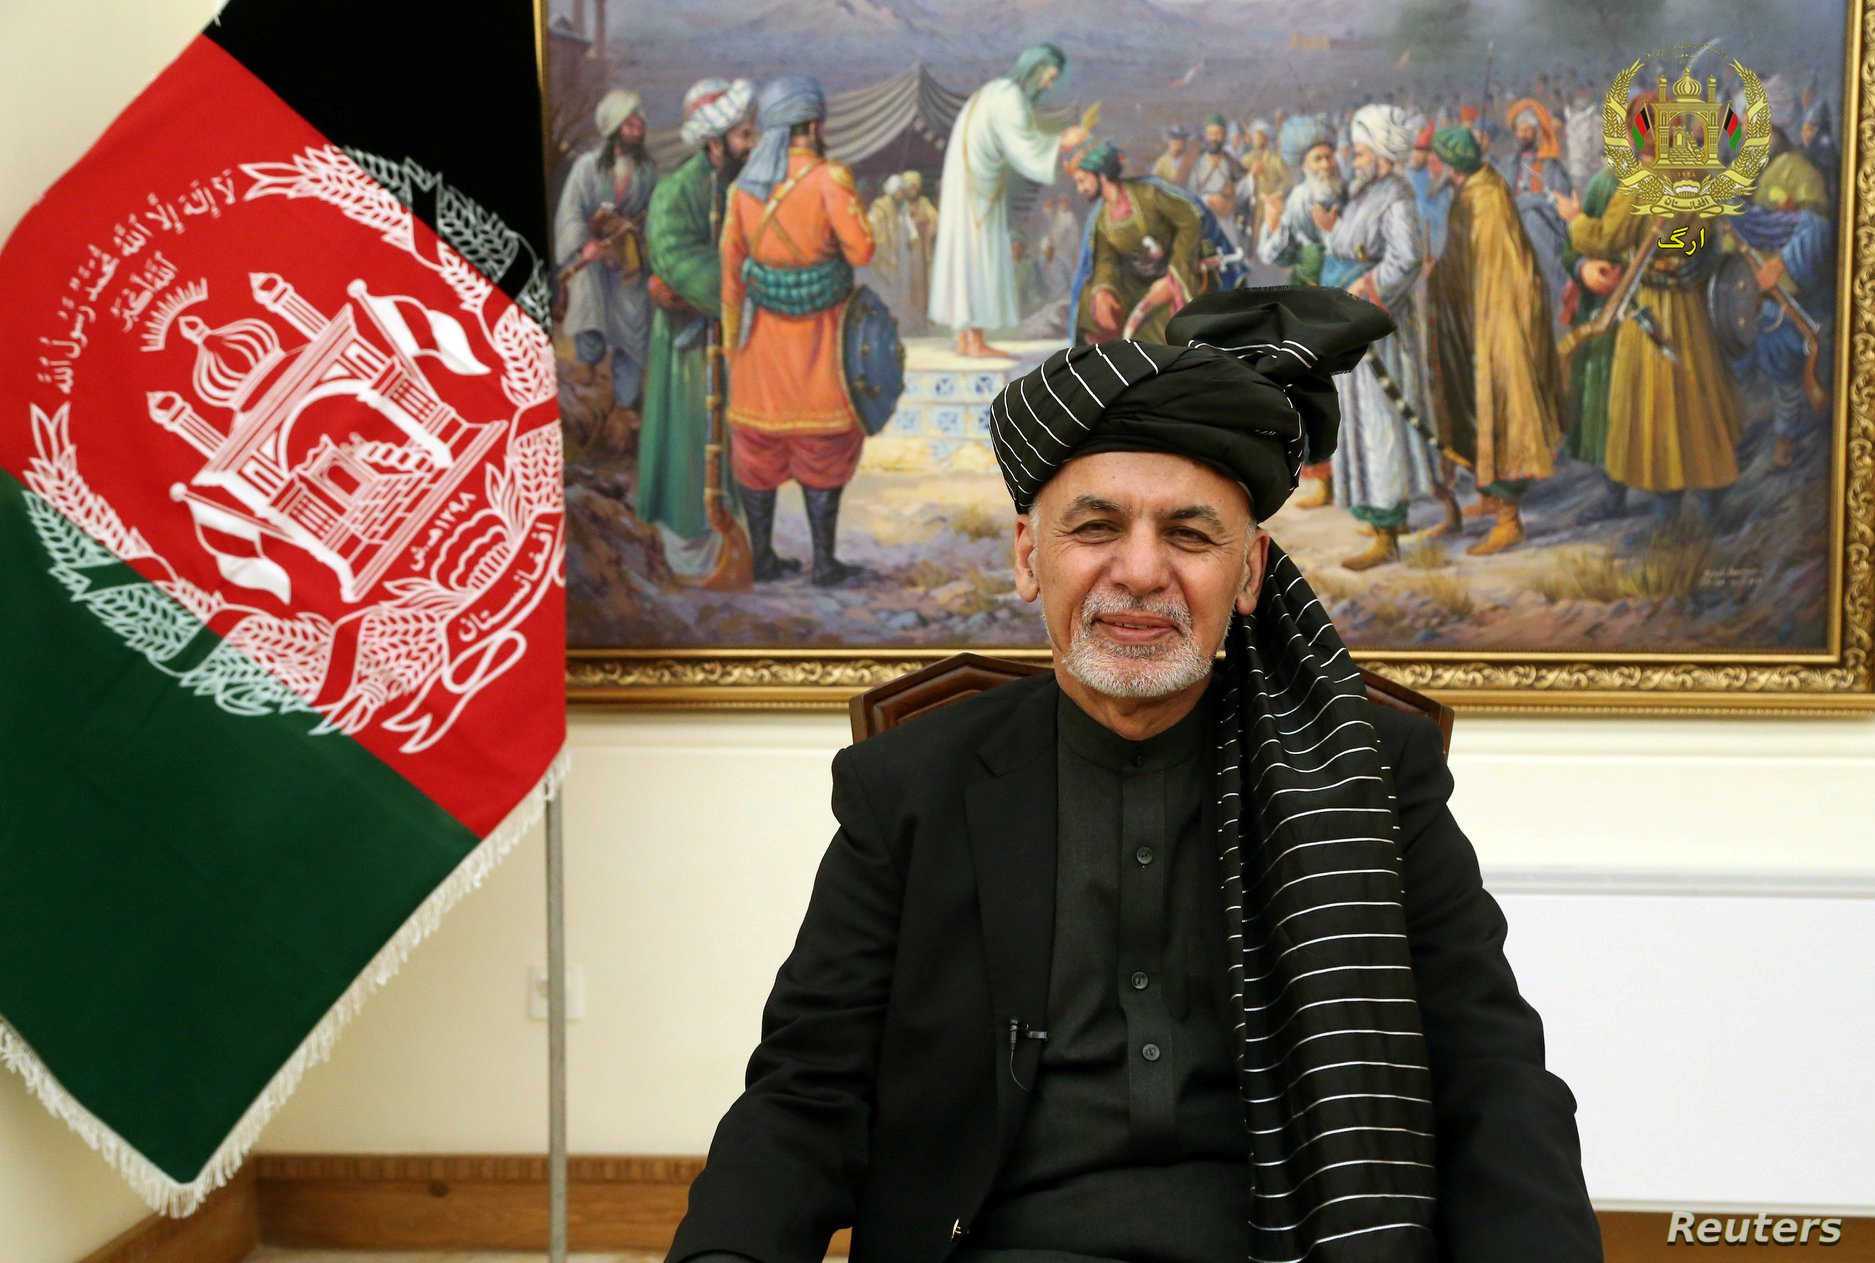 Afghanistan's President Ashraf Ghani speaks during a live TV broadcast at the presidential palace in Kabul, Afghanistan January 28, 2019. Presidential Palace office/Handout via REUTERS NO RESALES. NO ARCHIVE - RC142B0FF7F0